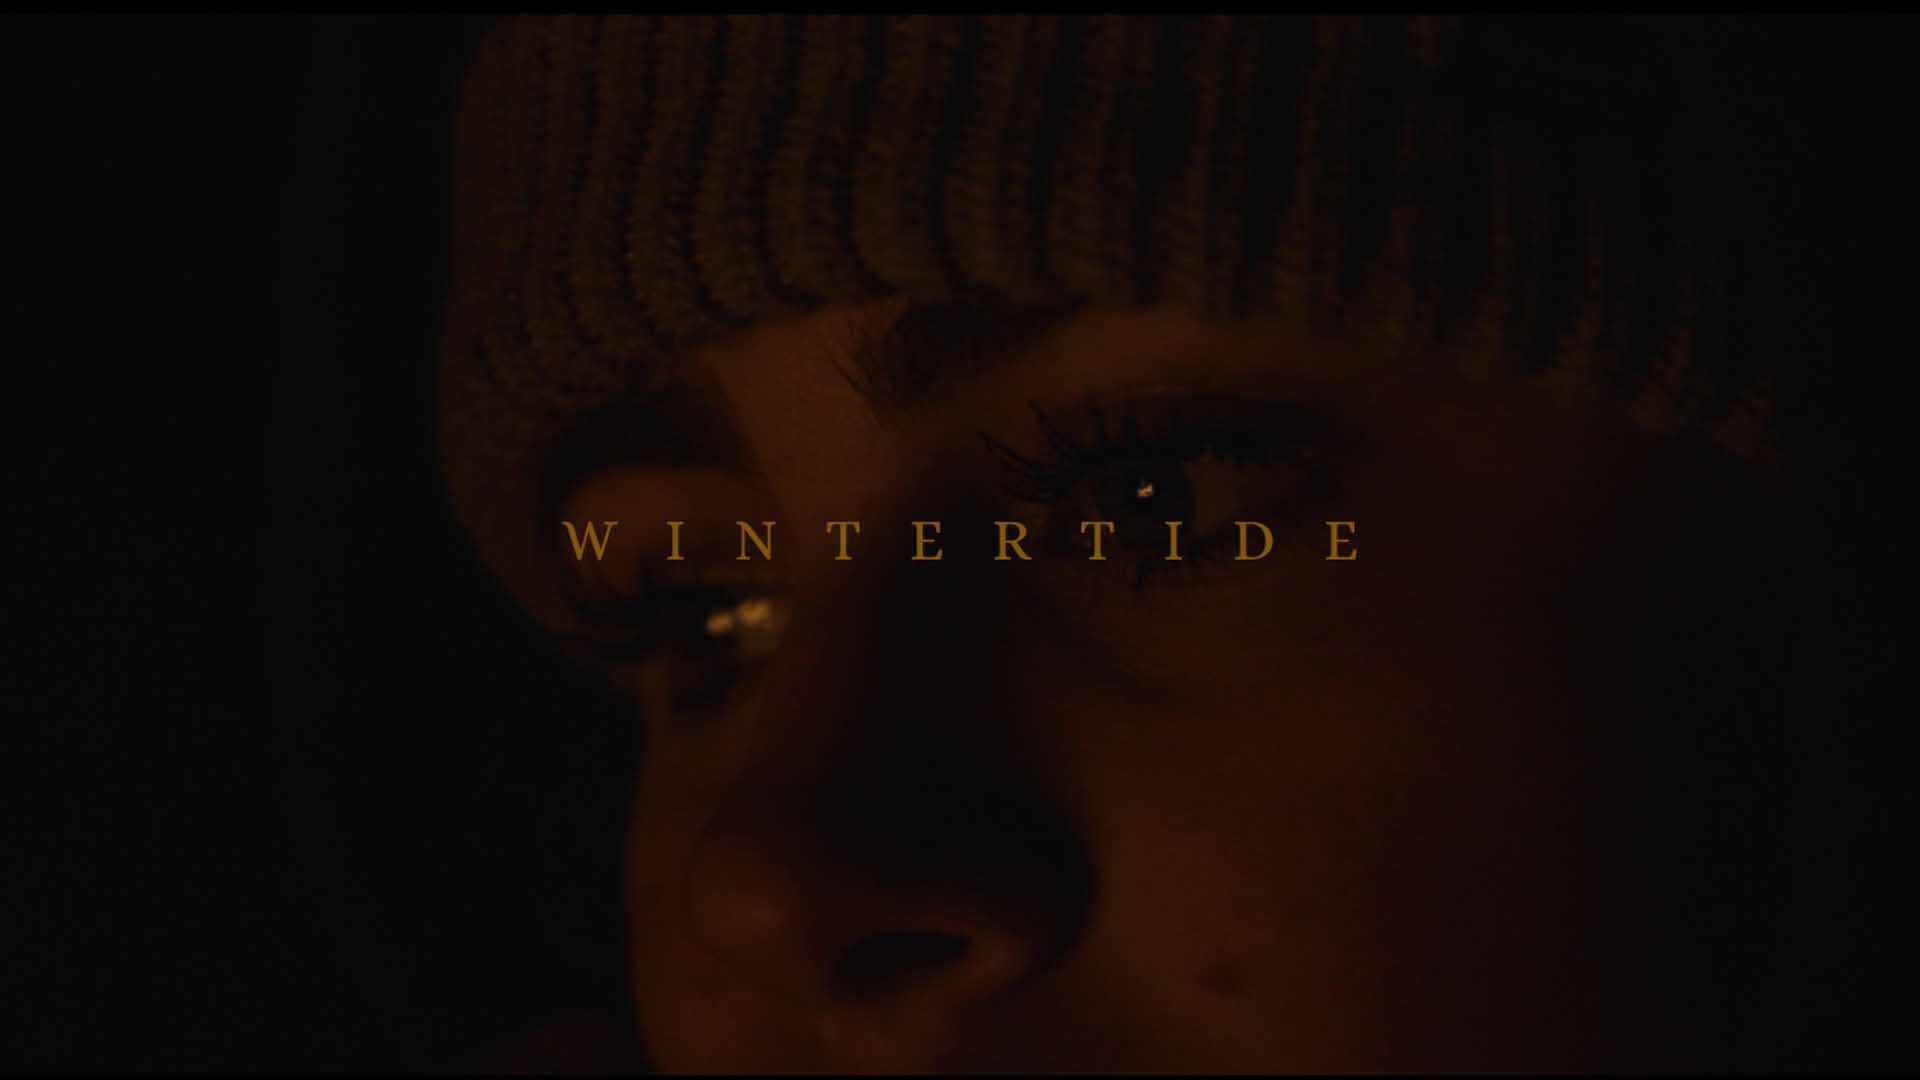 Wintertide - A Trip With Seth Curl